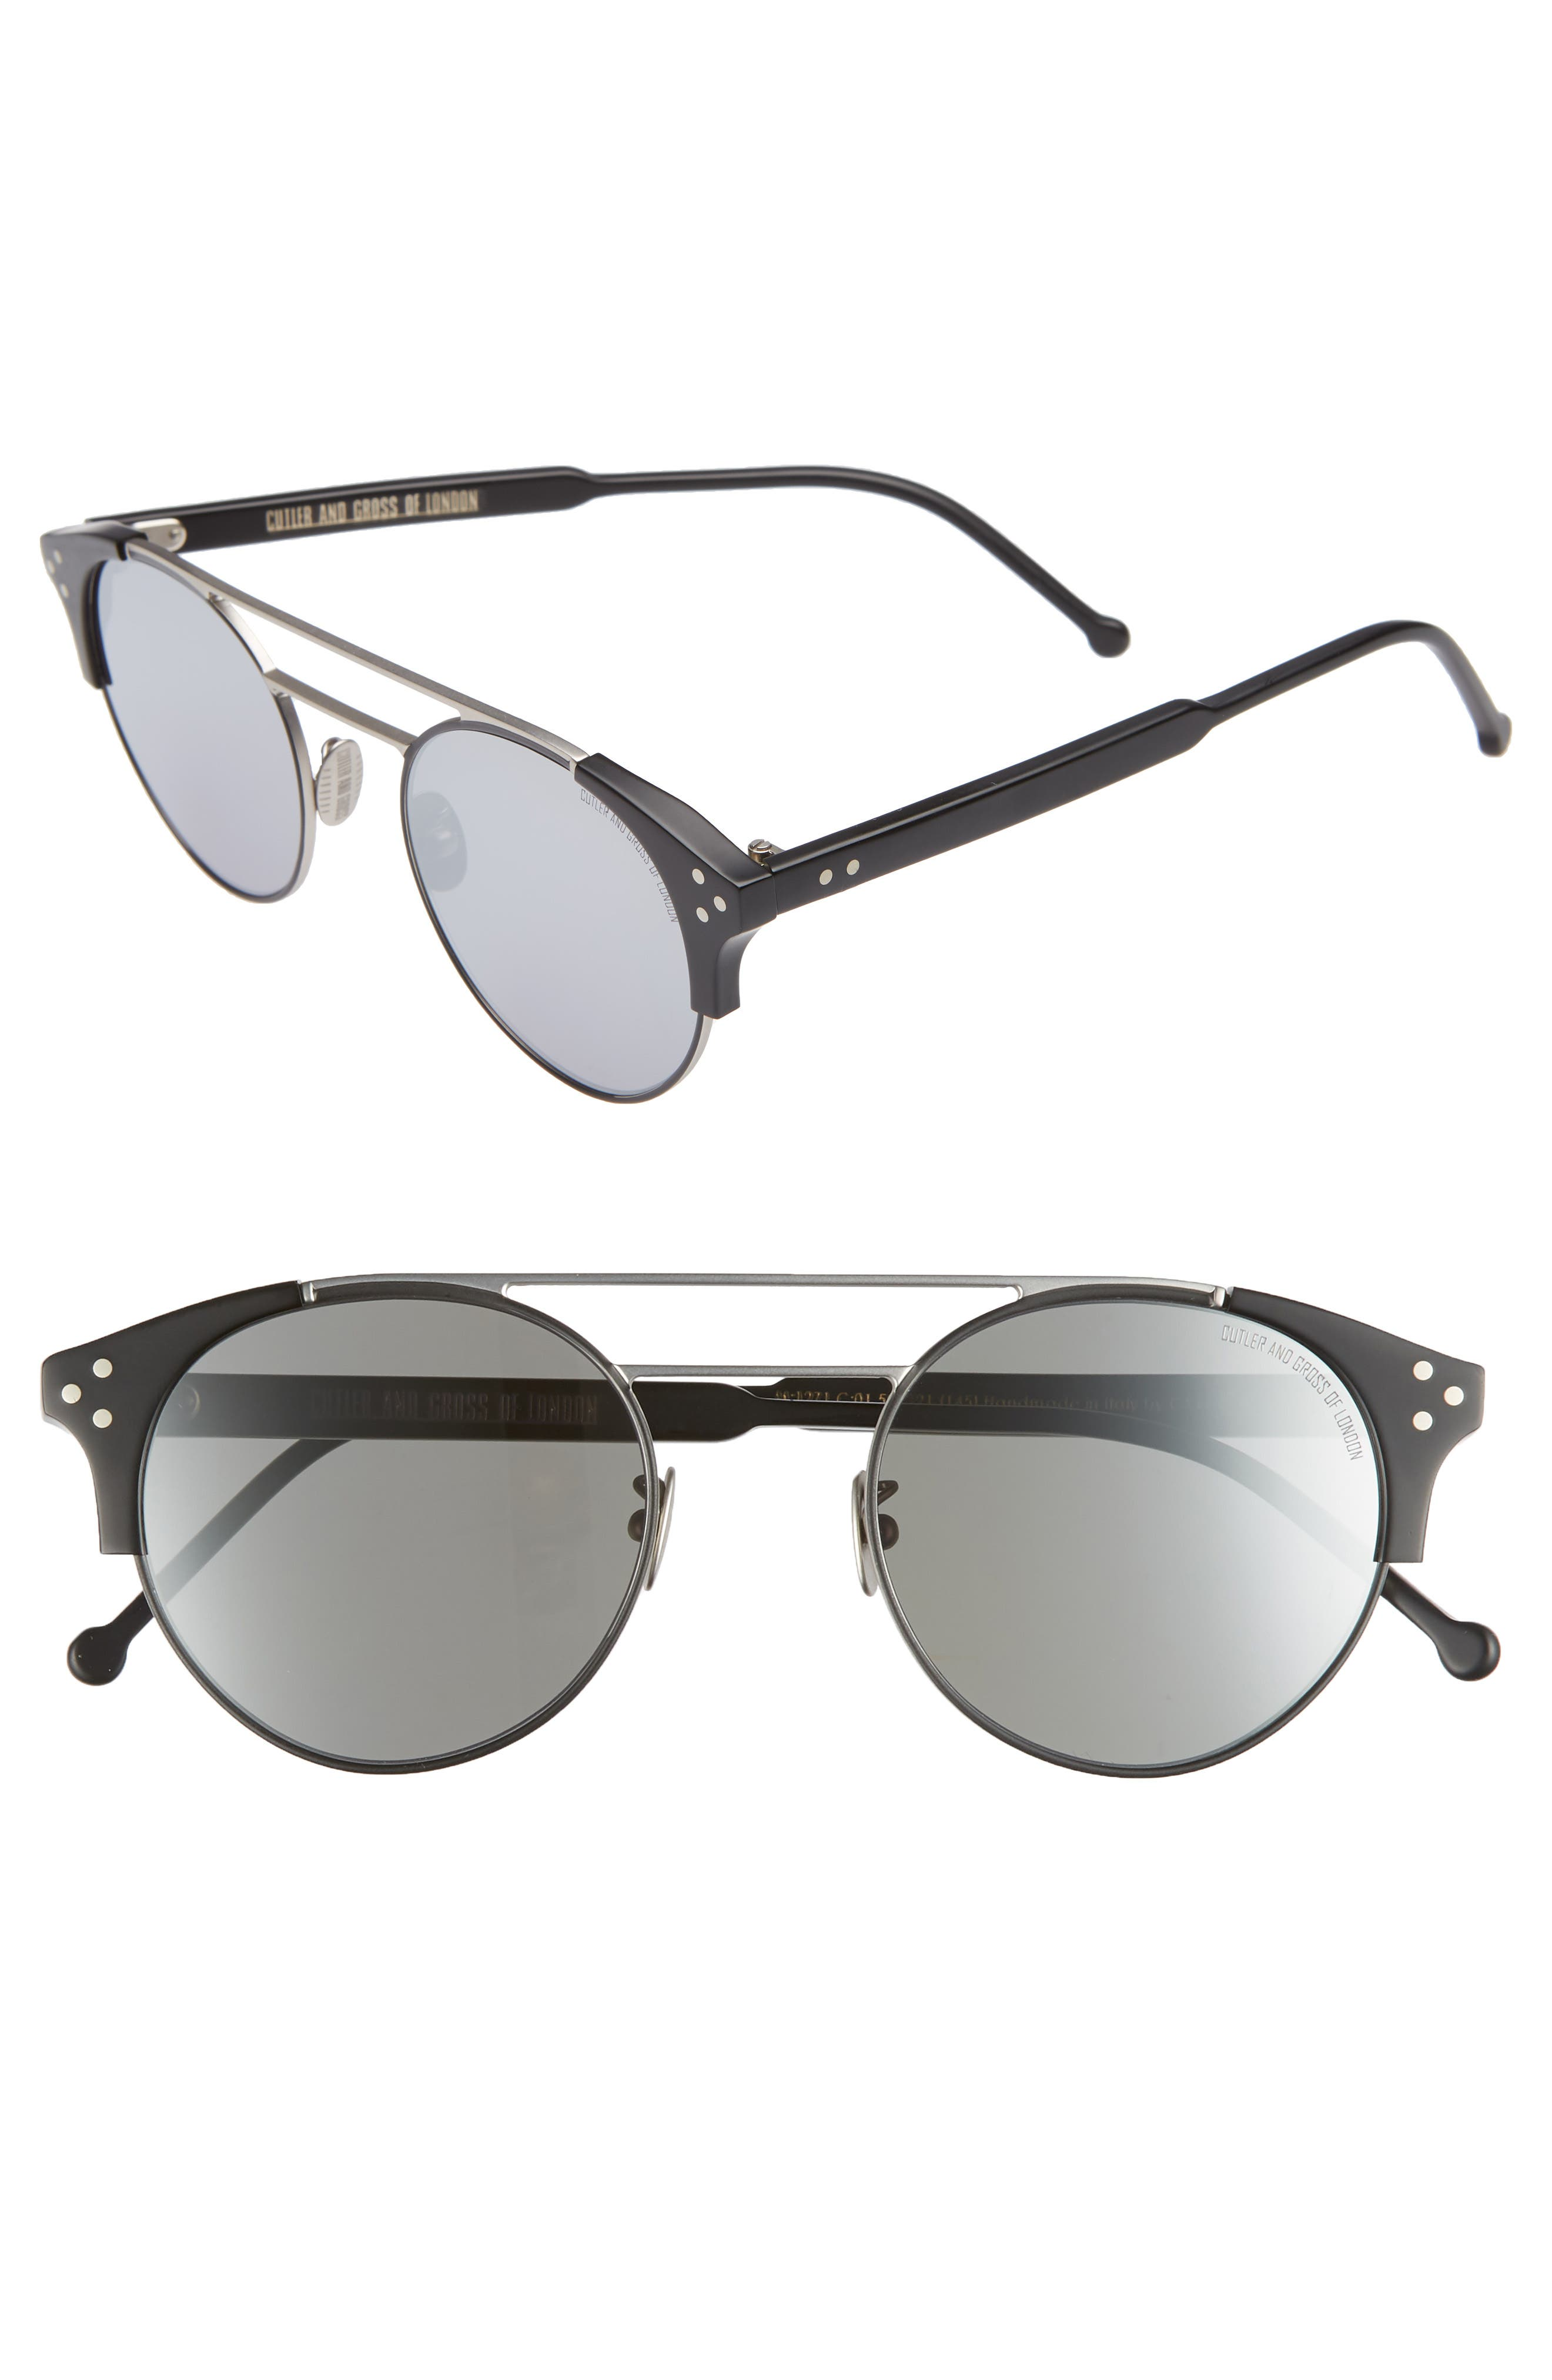 CUTLER AND GROSS 50MM POLARIZED ROUND SUNGLASSES - PALLADIUM AND BLACK/ SILVER